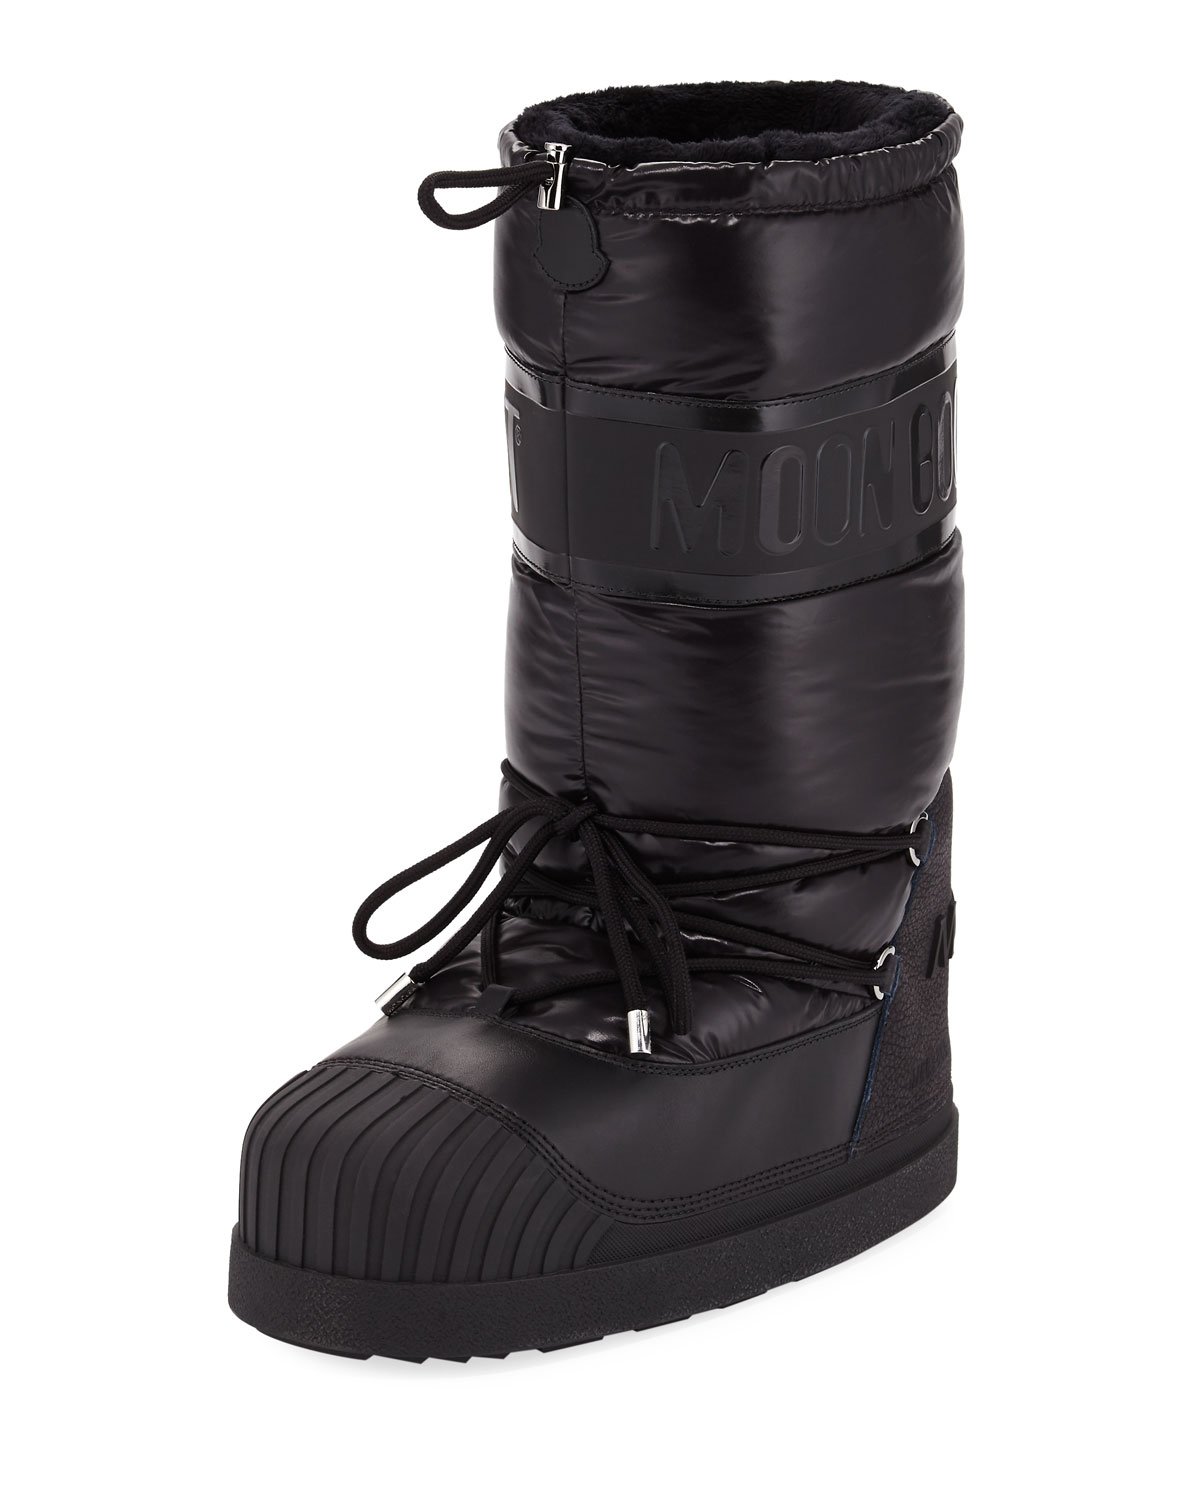 4f1e4bb97fd5 Moncler Venus Nylon Laced Moon Boot